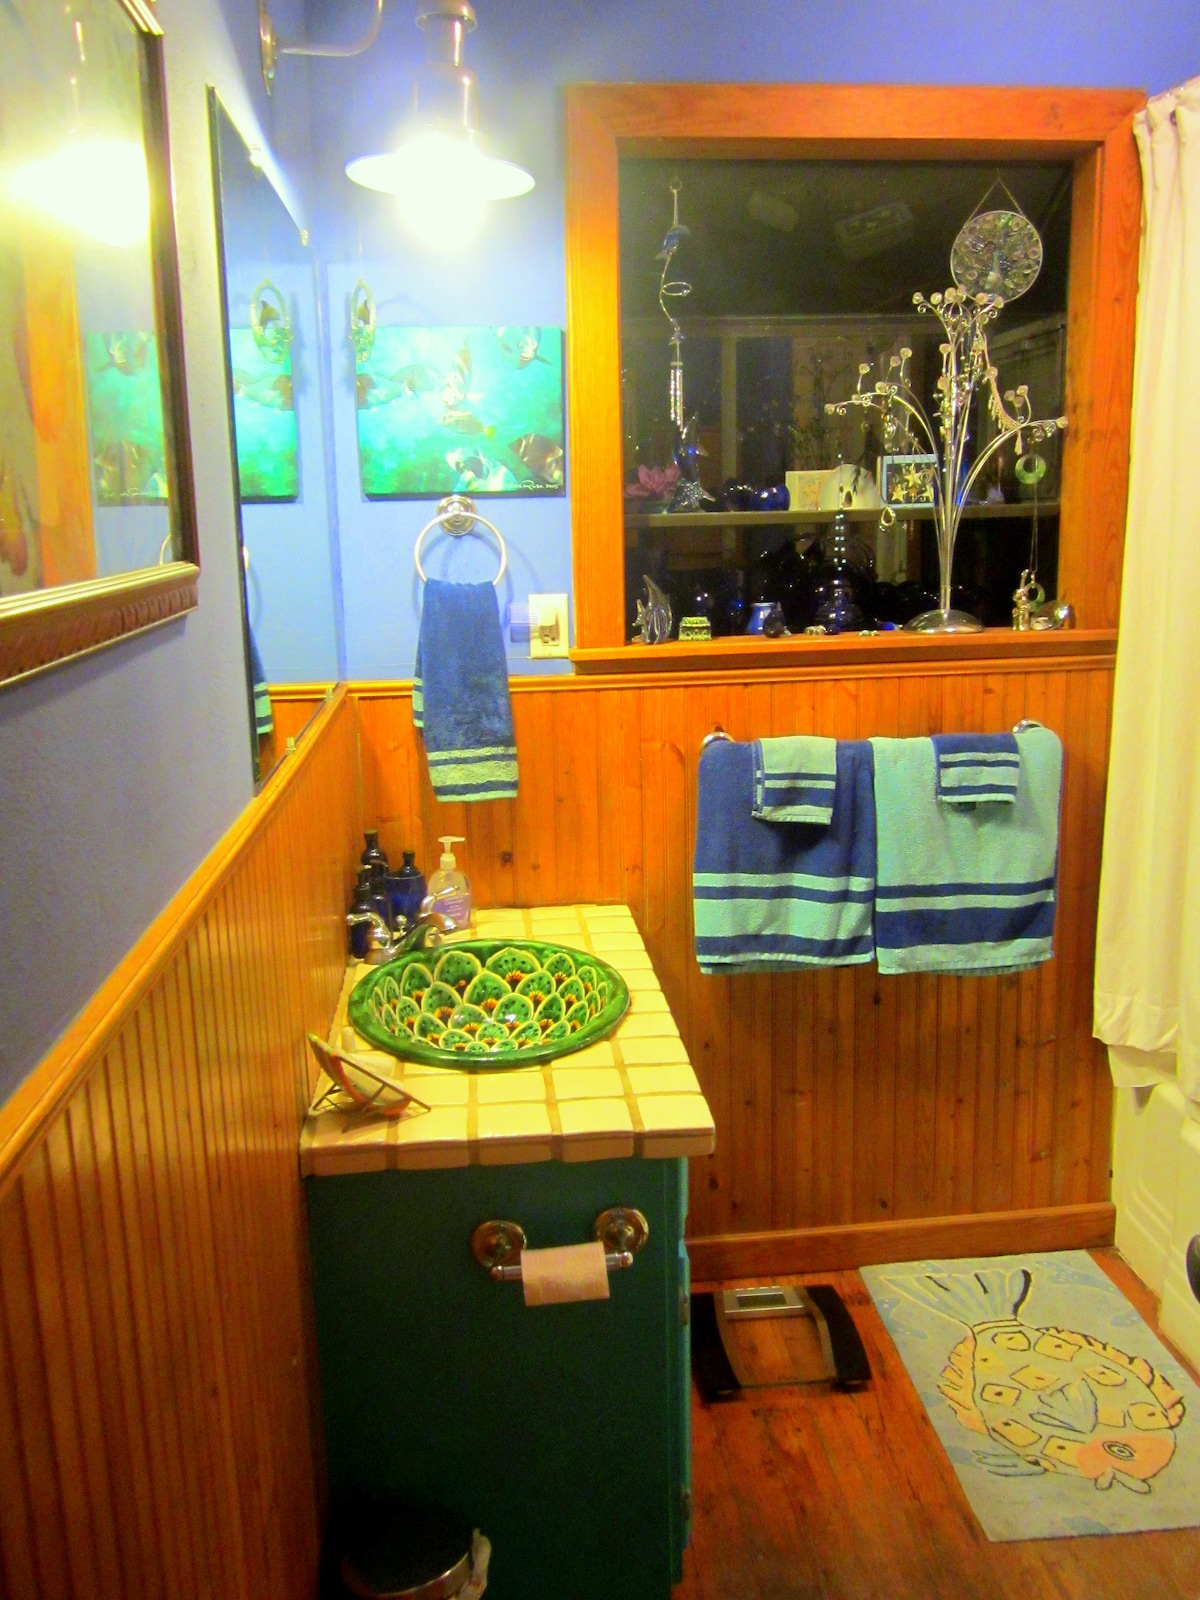 This is another view of your private bath, very colorful, with both shower and tub across from your downstairs bedroom.